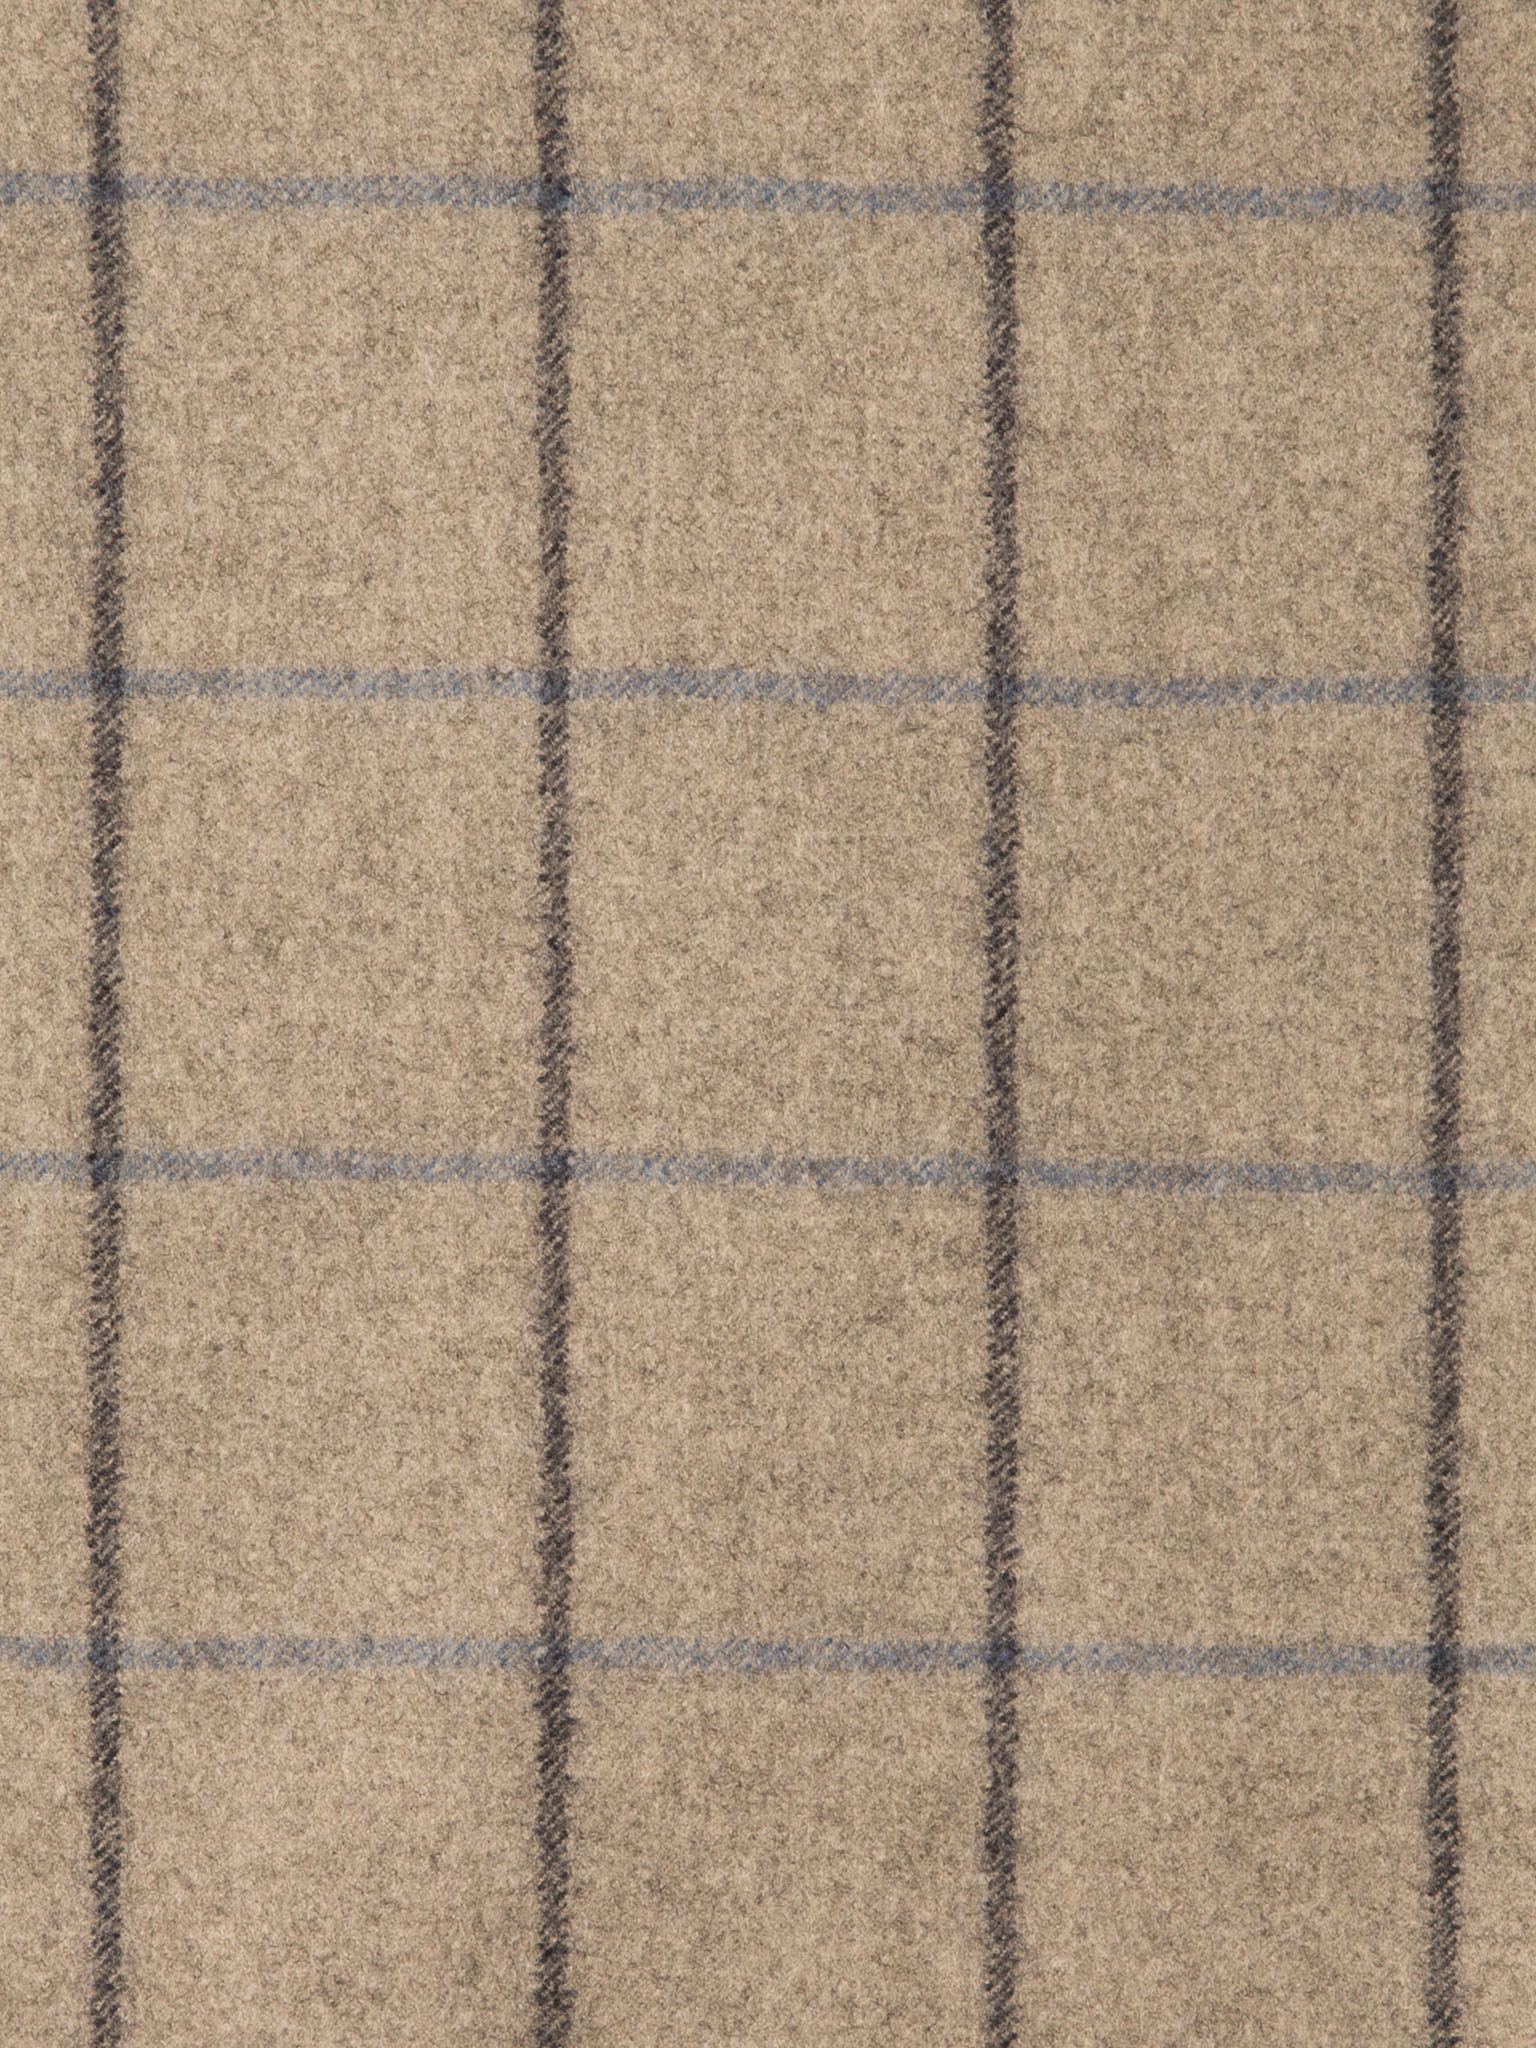 SAVILE ROW CHECK DE12074